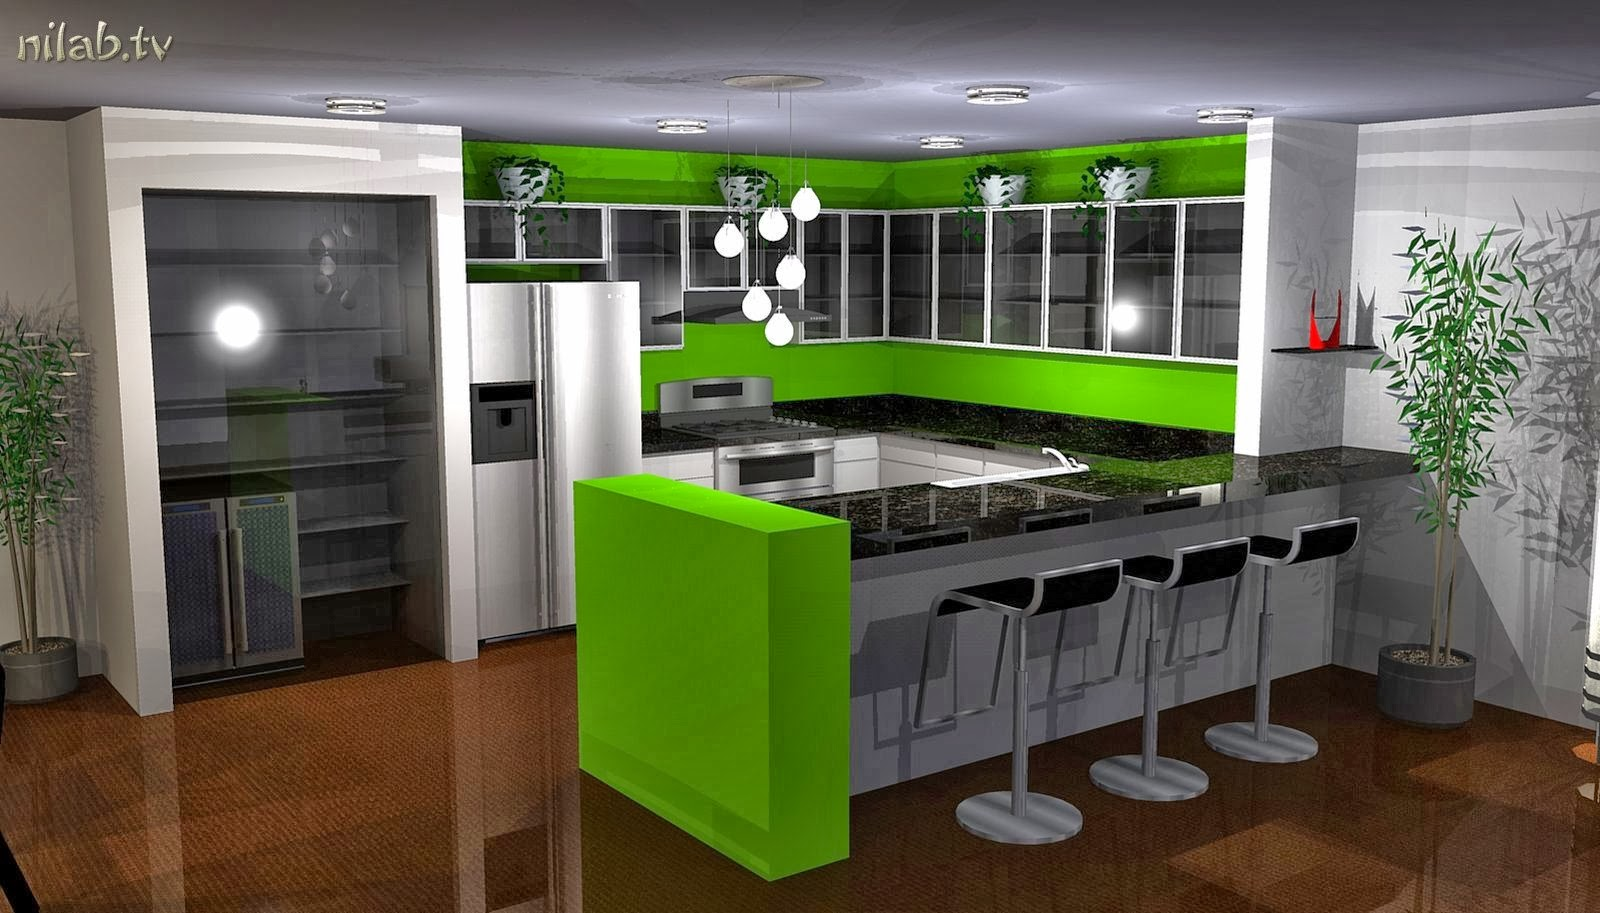 designing your kitchen sheidaart kitchen design 3313